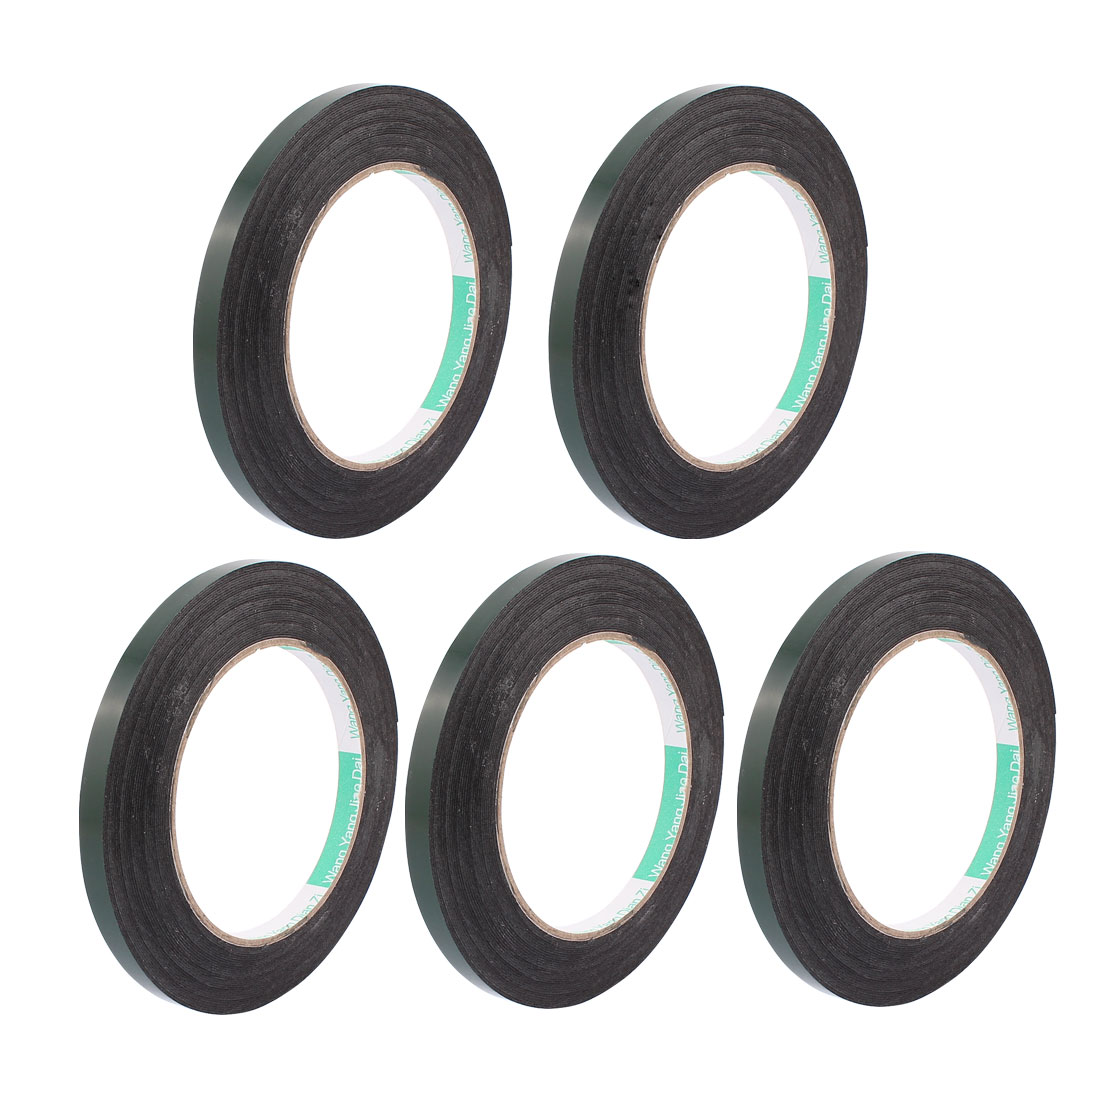 5 Pcs 8MM Width 10M Length 0.5MM Thick Dual Sided Sealing Shockproof Sponge Tape